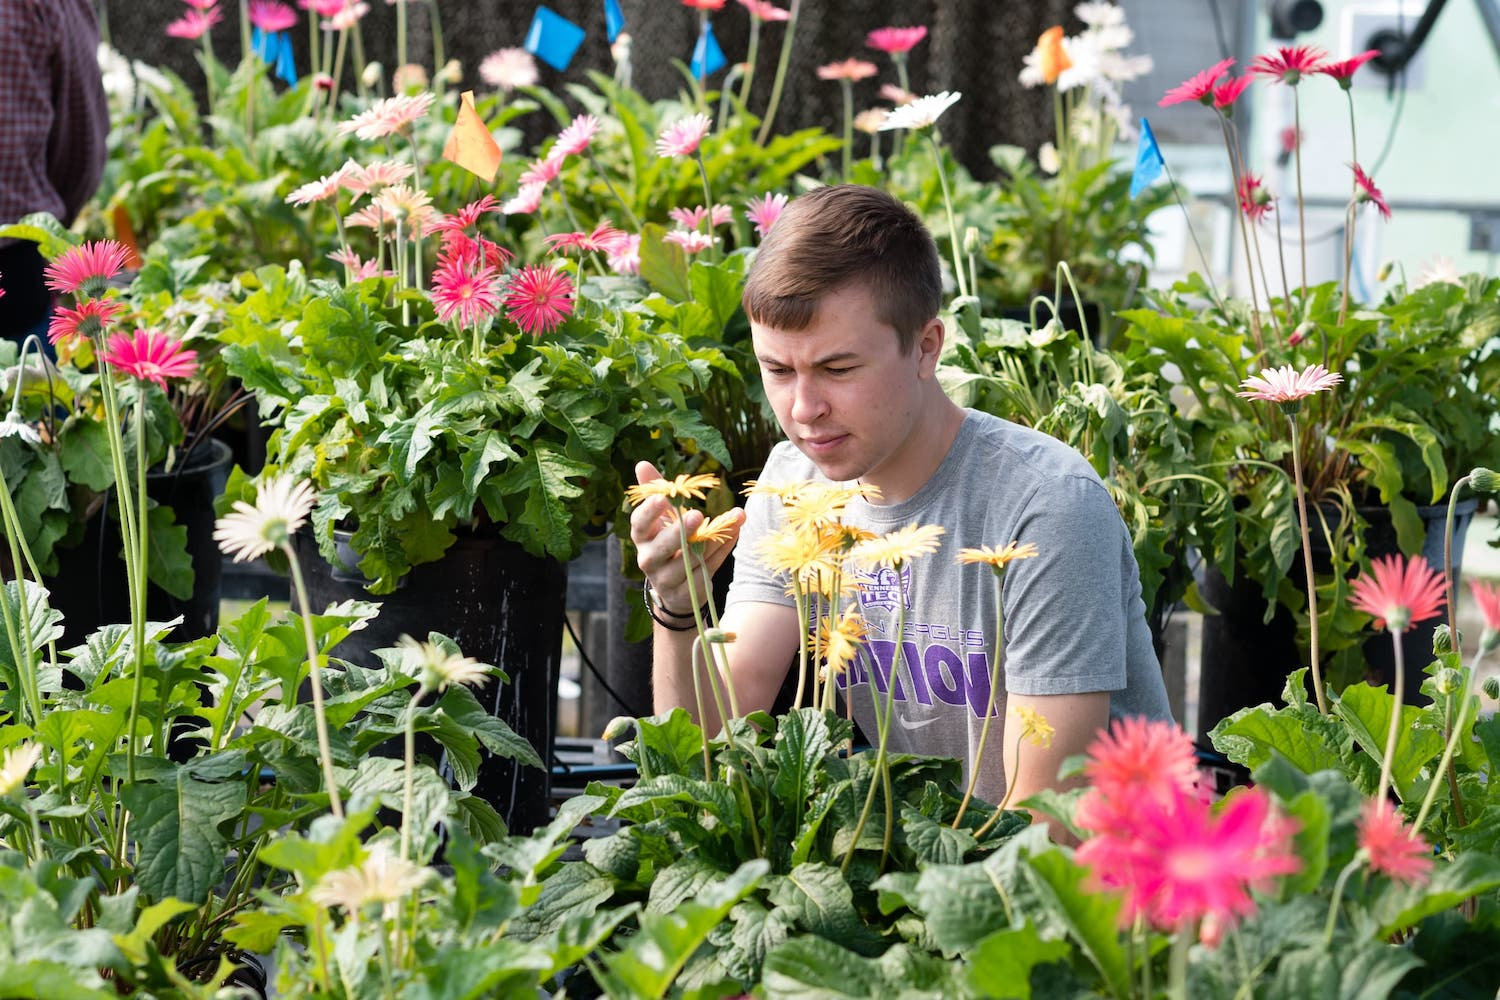 A student inspects flowers in the greenhouse